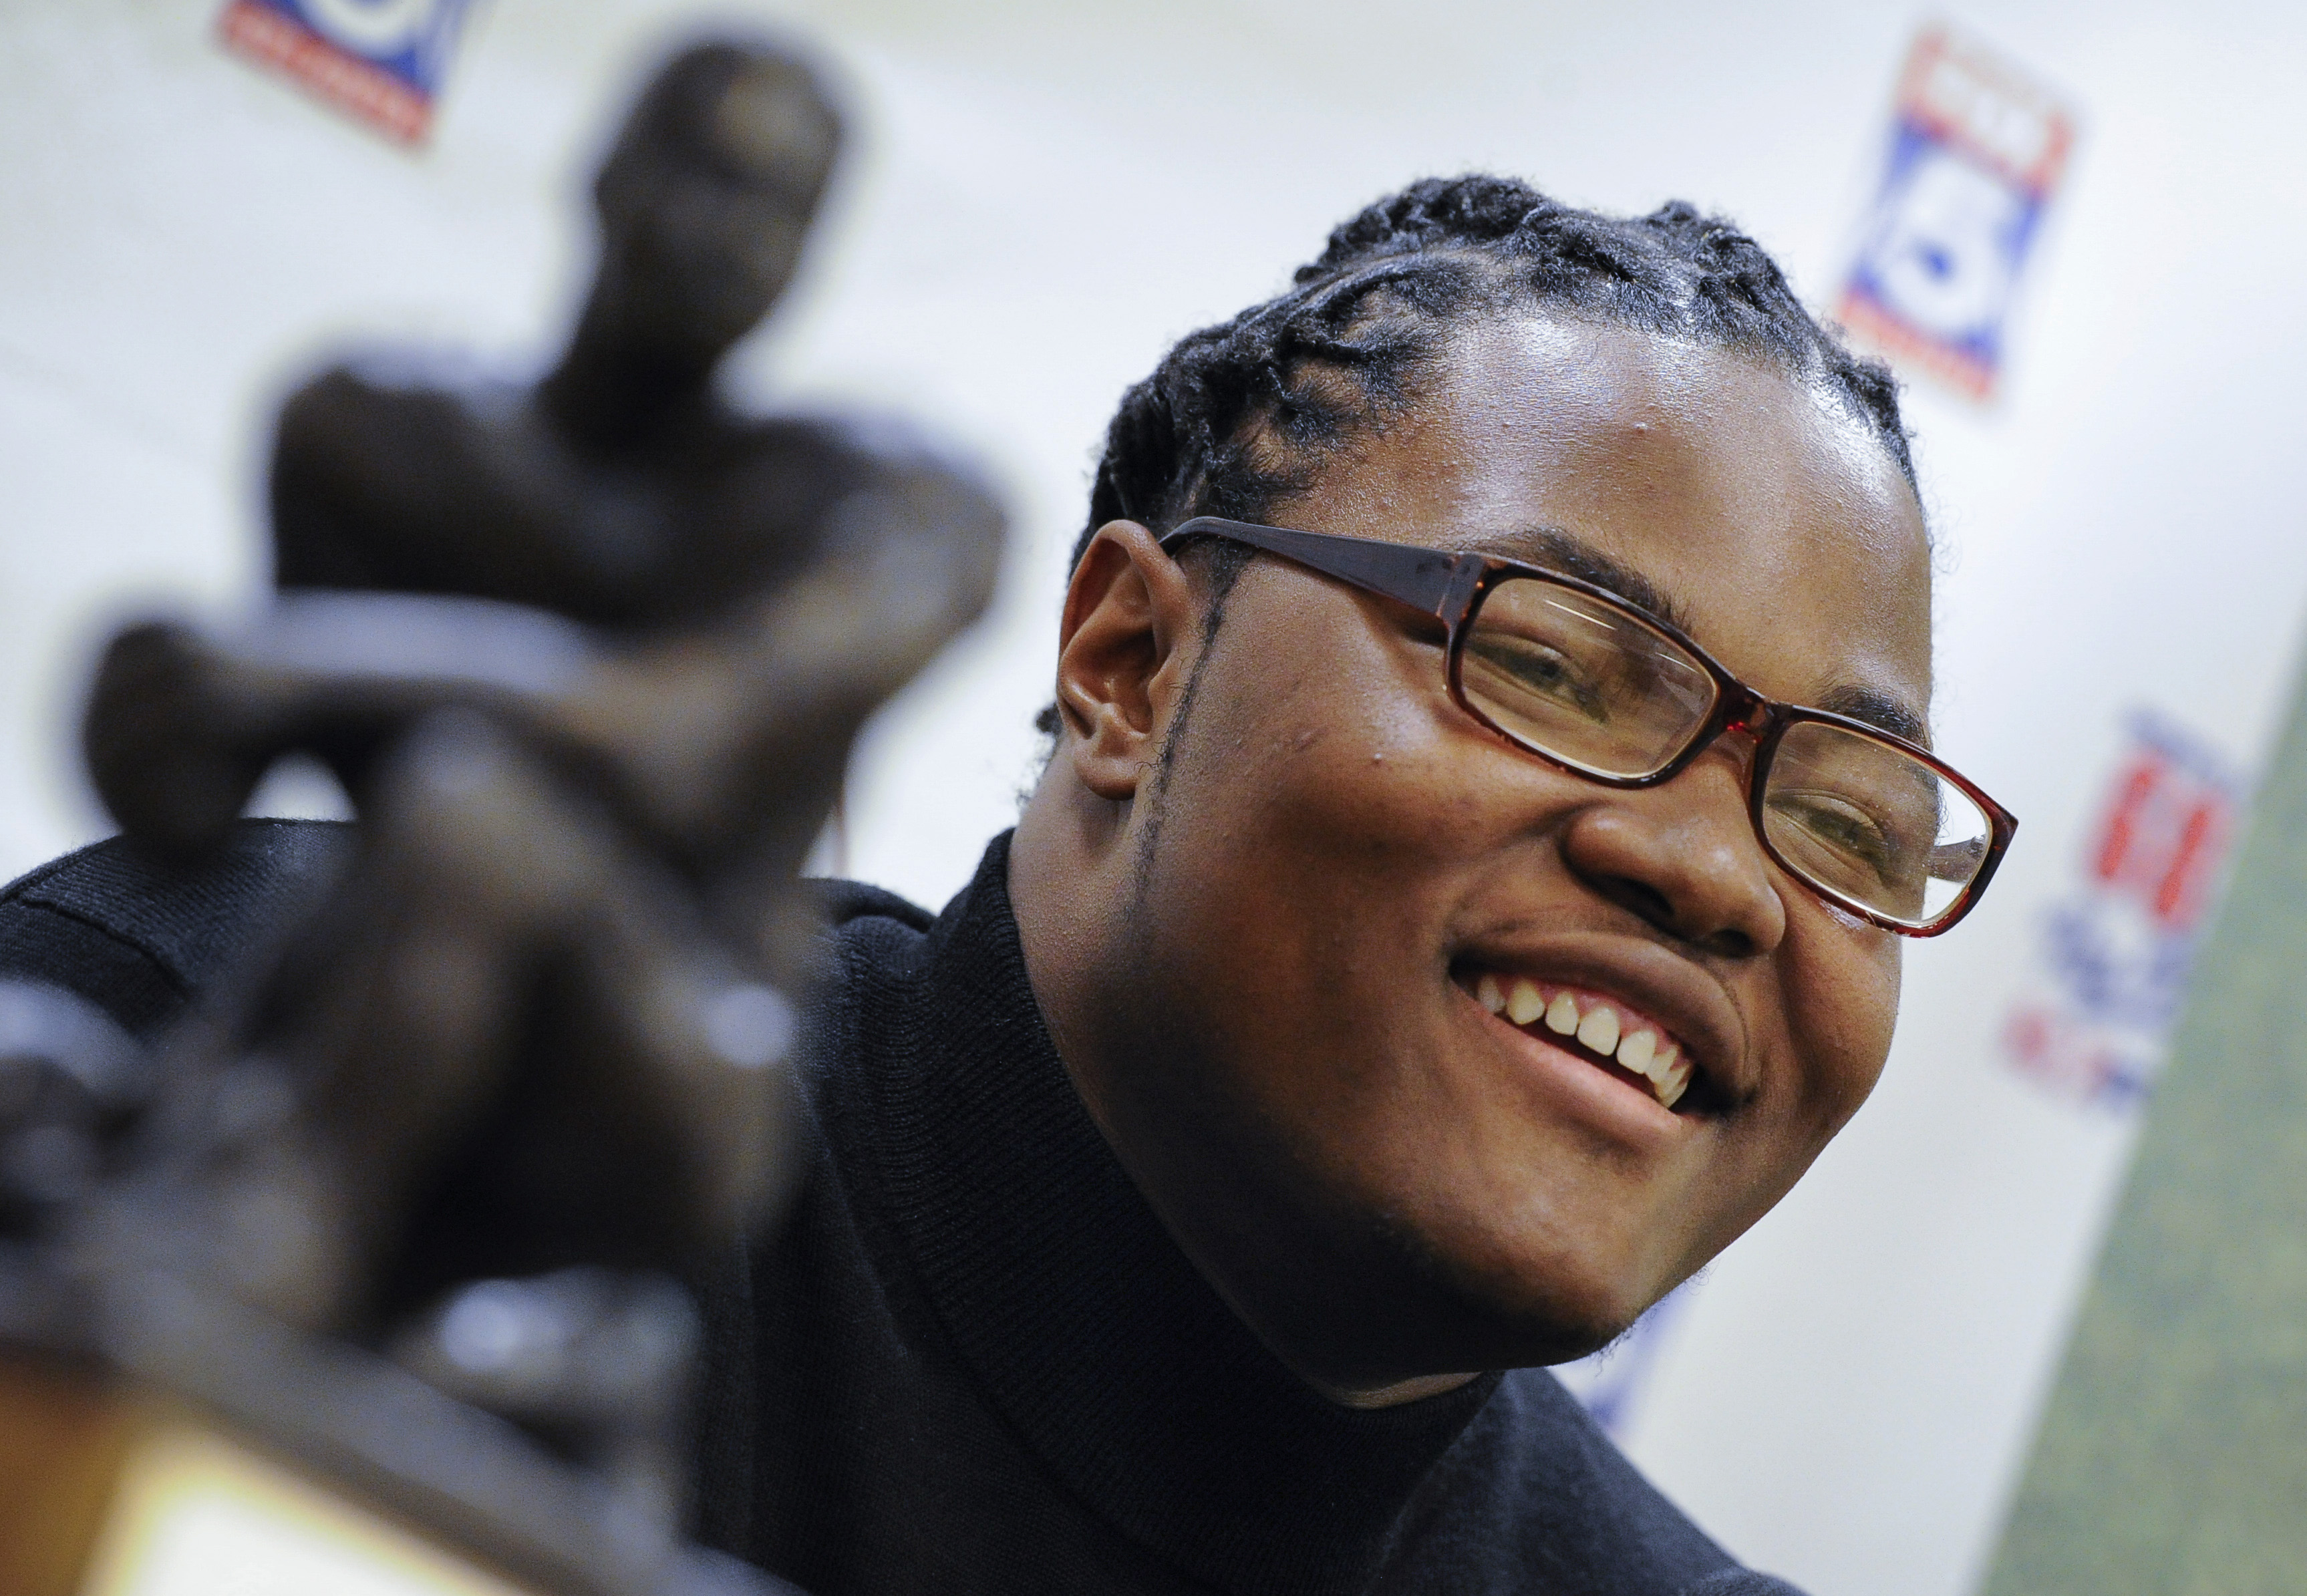 FILE - In this Thursday, Jan. 28, 2016, file photo, defensive lineman Rashan Gary, of Paramus, N.J., talks to reporters at the Touchdown Club of Atlanta, in Atlanta. Gary, a defensive tackle from Paramus Catholic High School, is the No. 1 recruit in the c